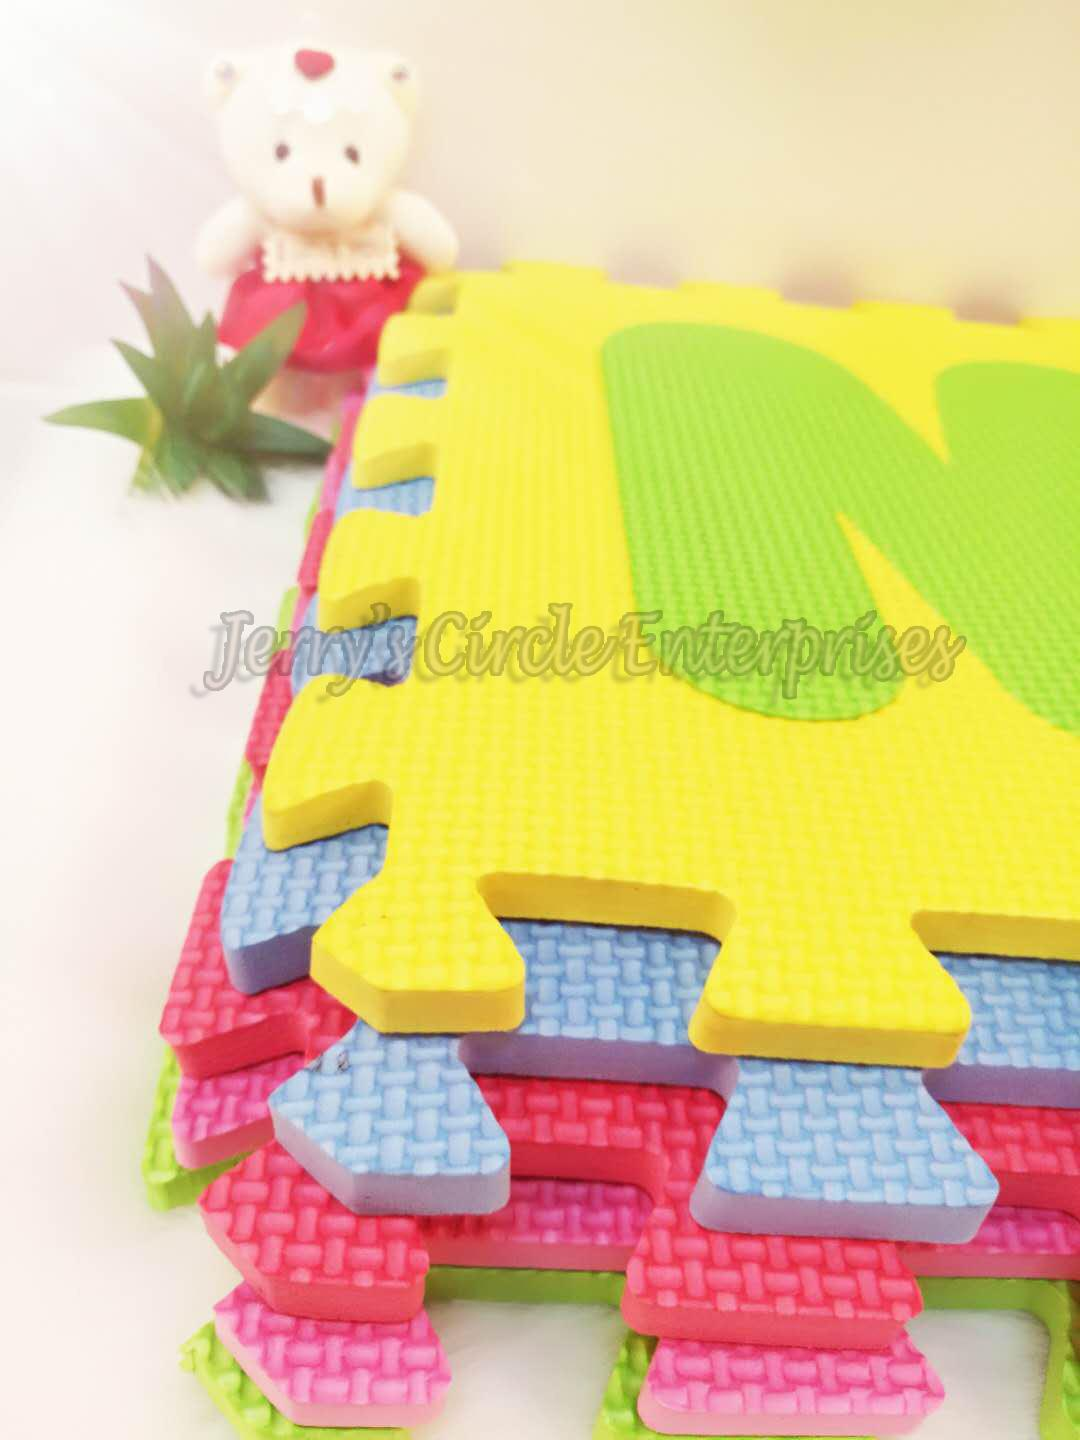 Ptr-2b Letter 30x30 Crawling Mat / Letters Design 30x30 Puzzle Mat 10 In 1 Jce By Baby Centre By Jce.